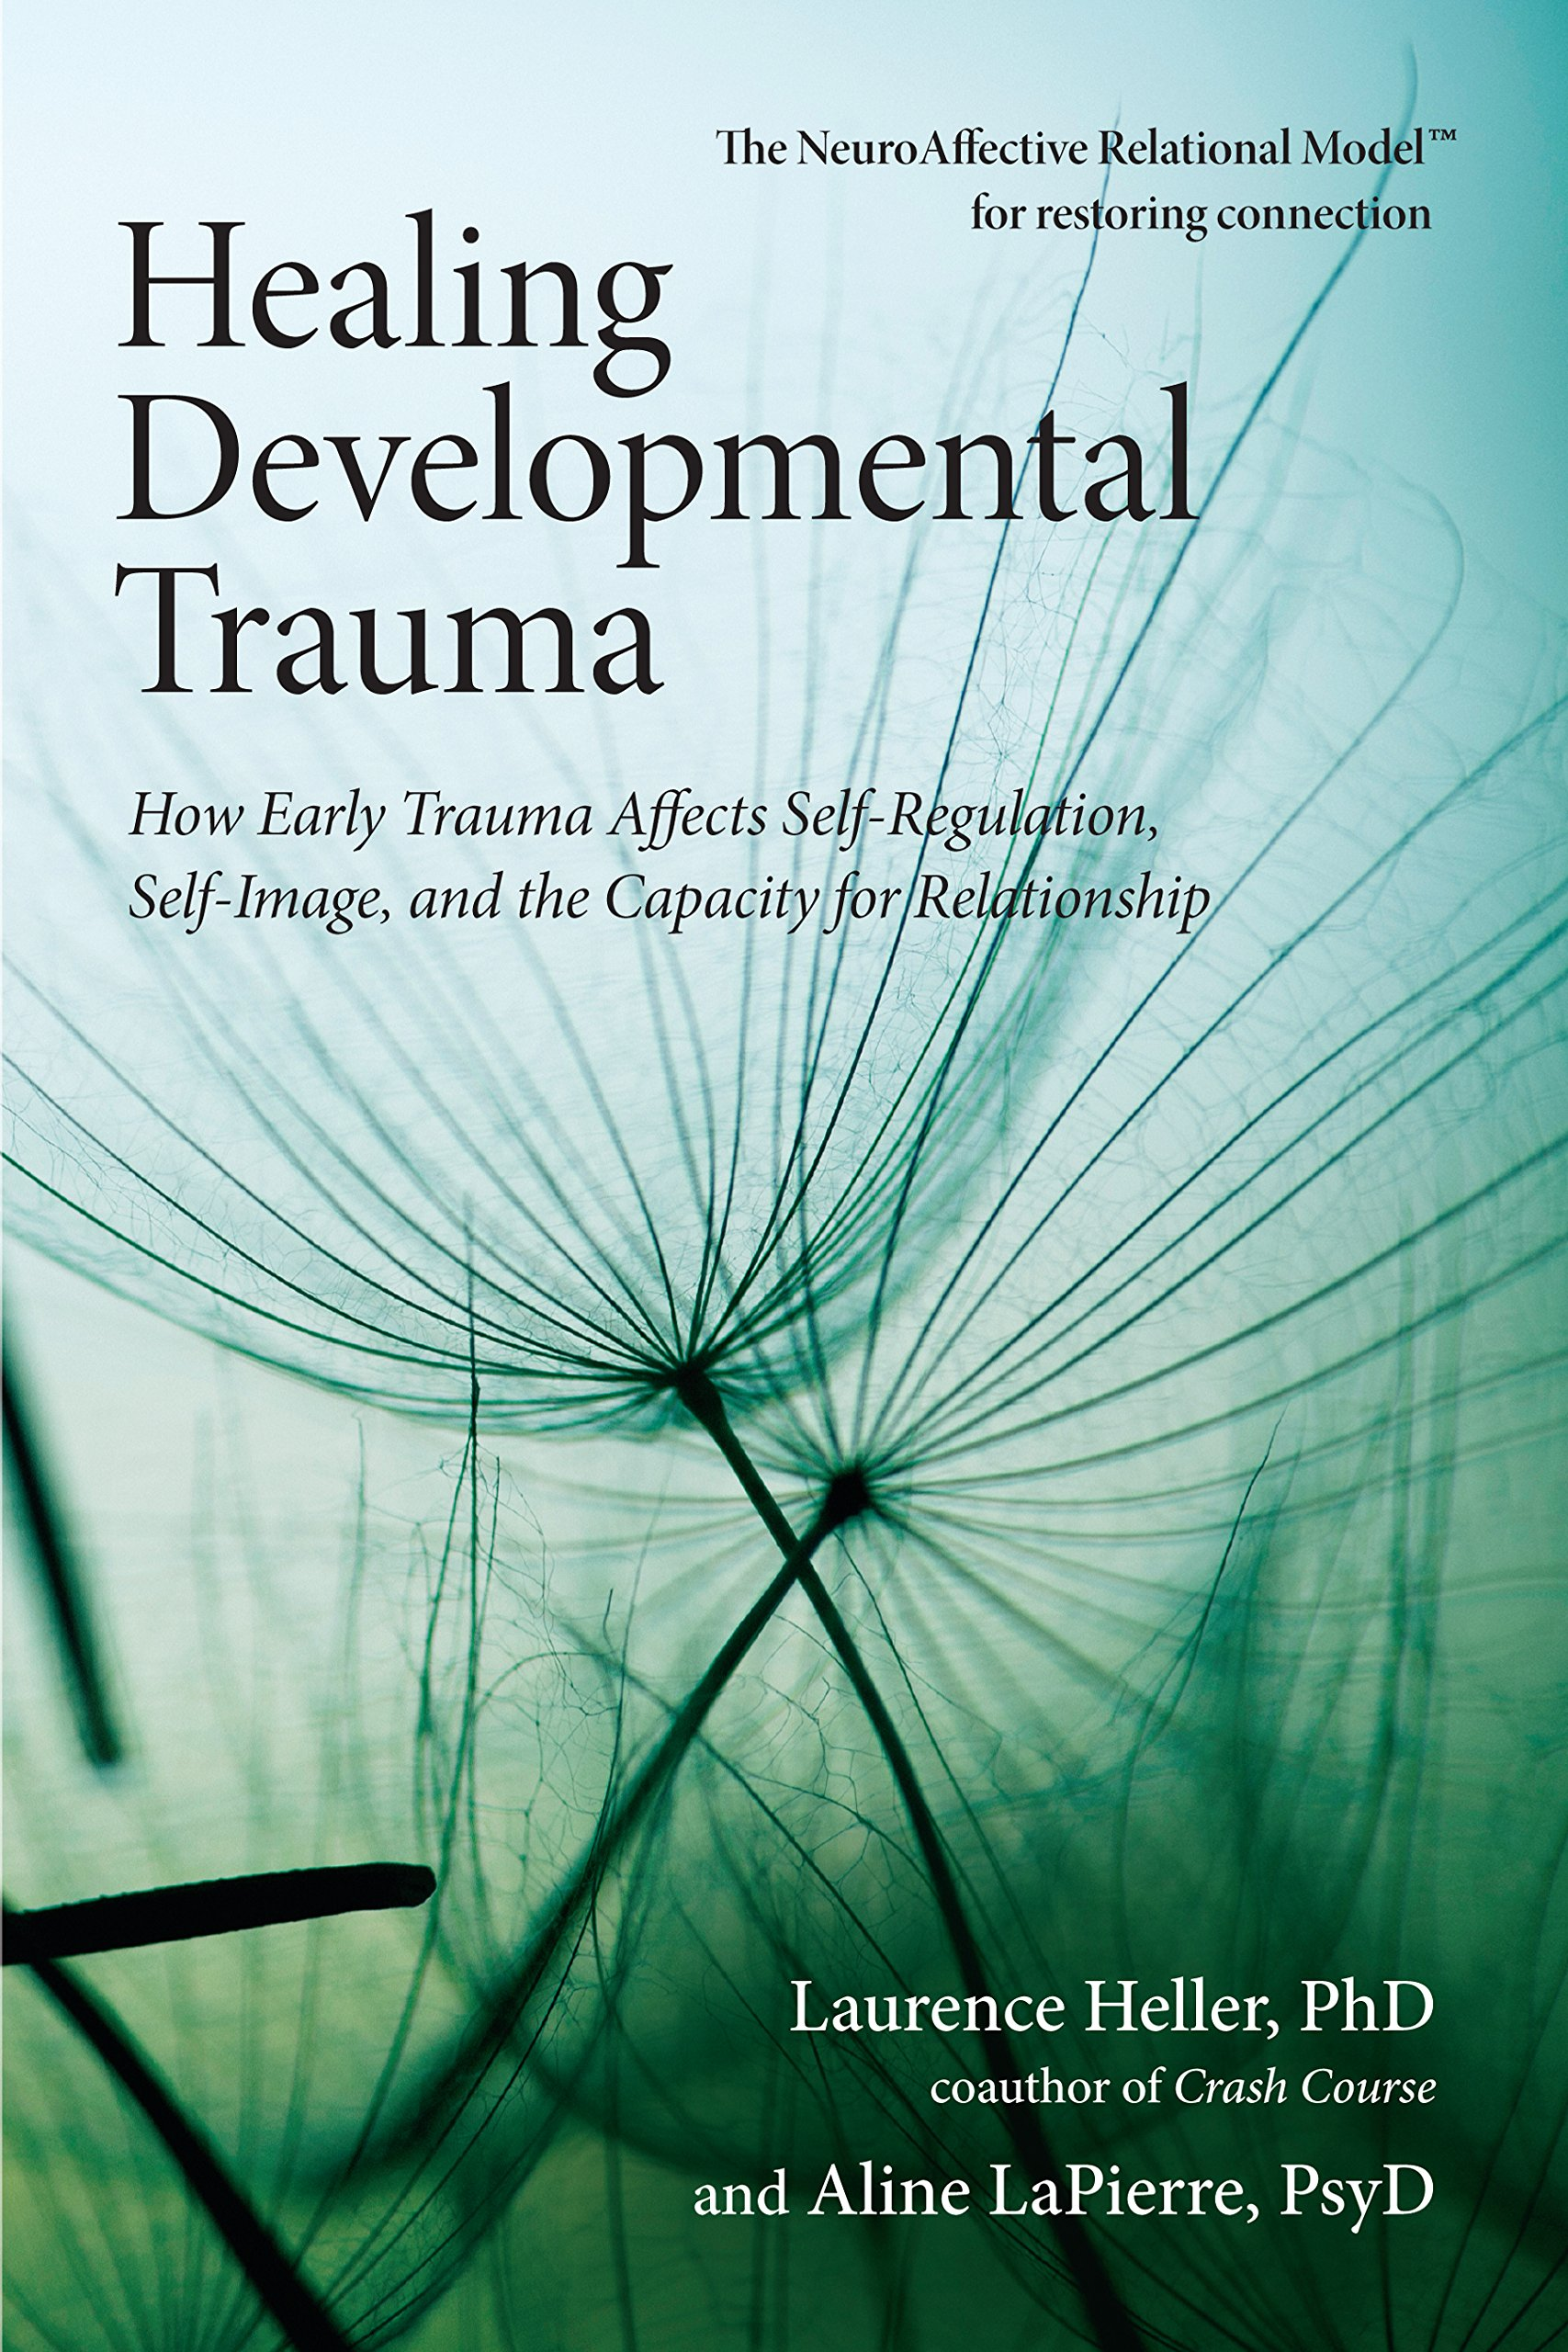 Healing Developmental Trauma book